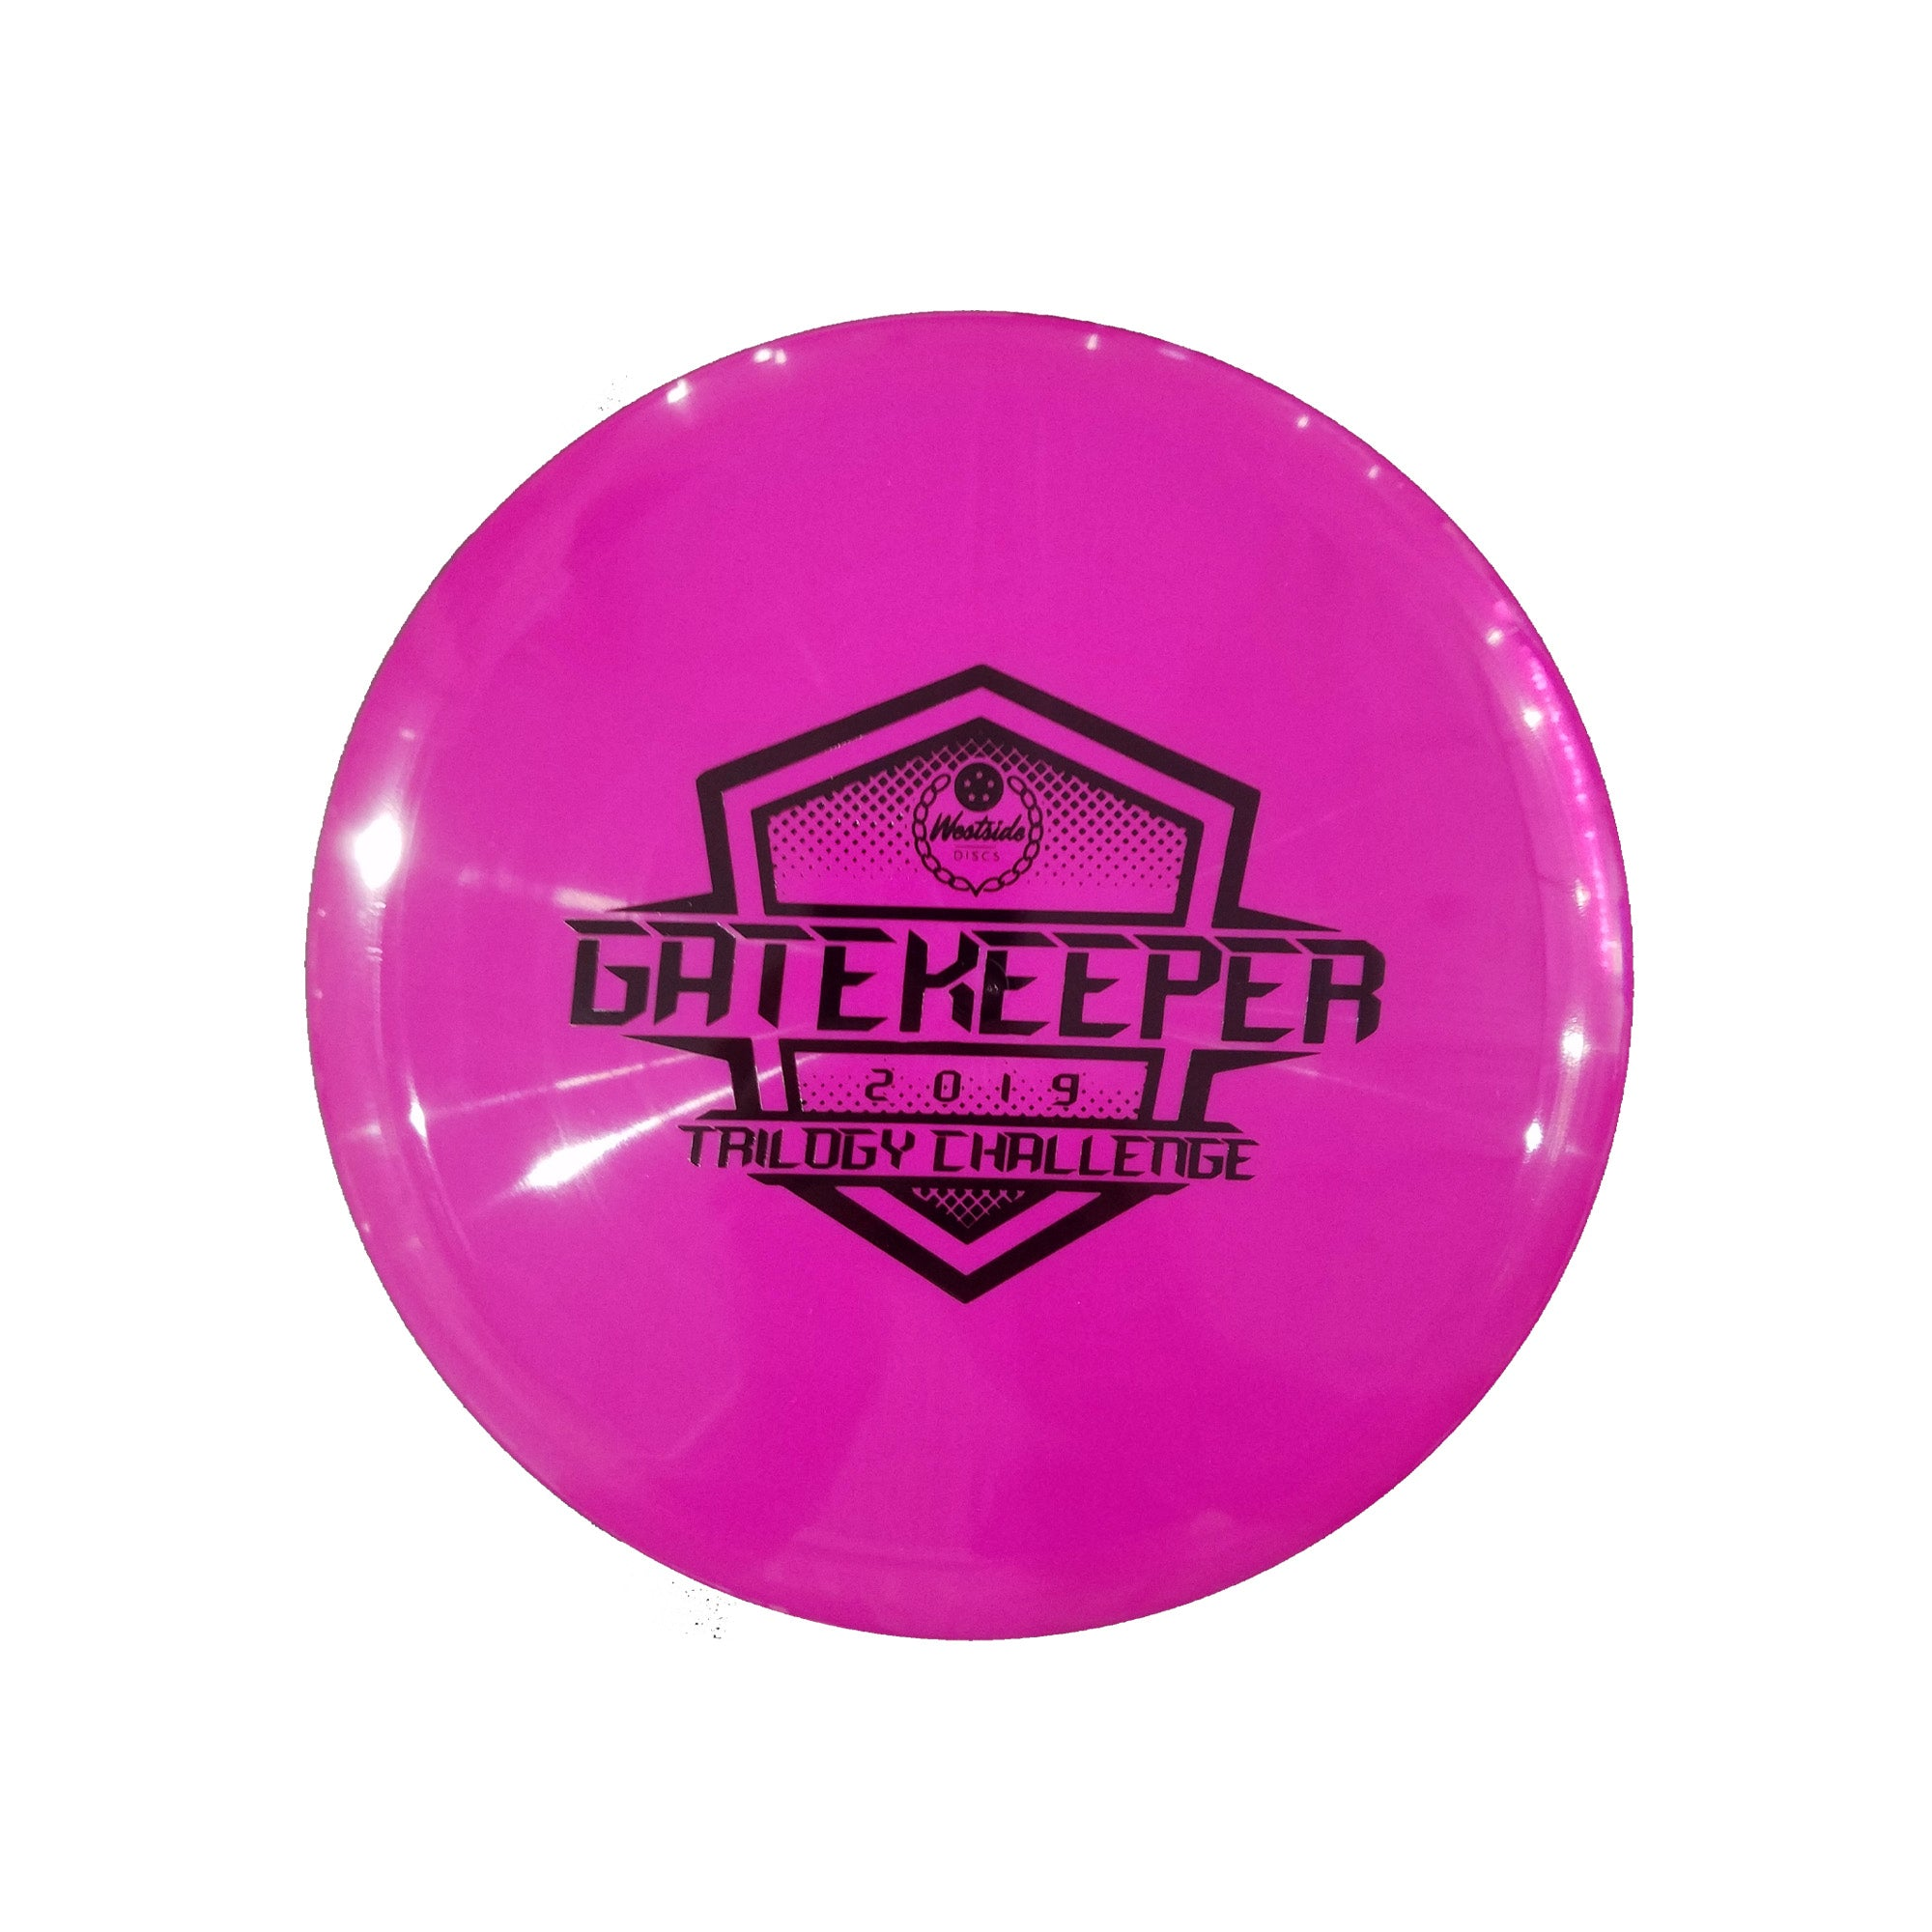 Westside Discs Tournament Gatekeeper Trilogy Challenge Stamp Midrange Disc - 176g